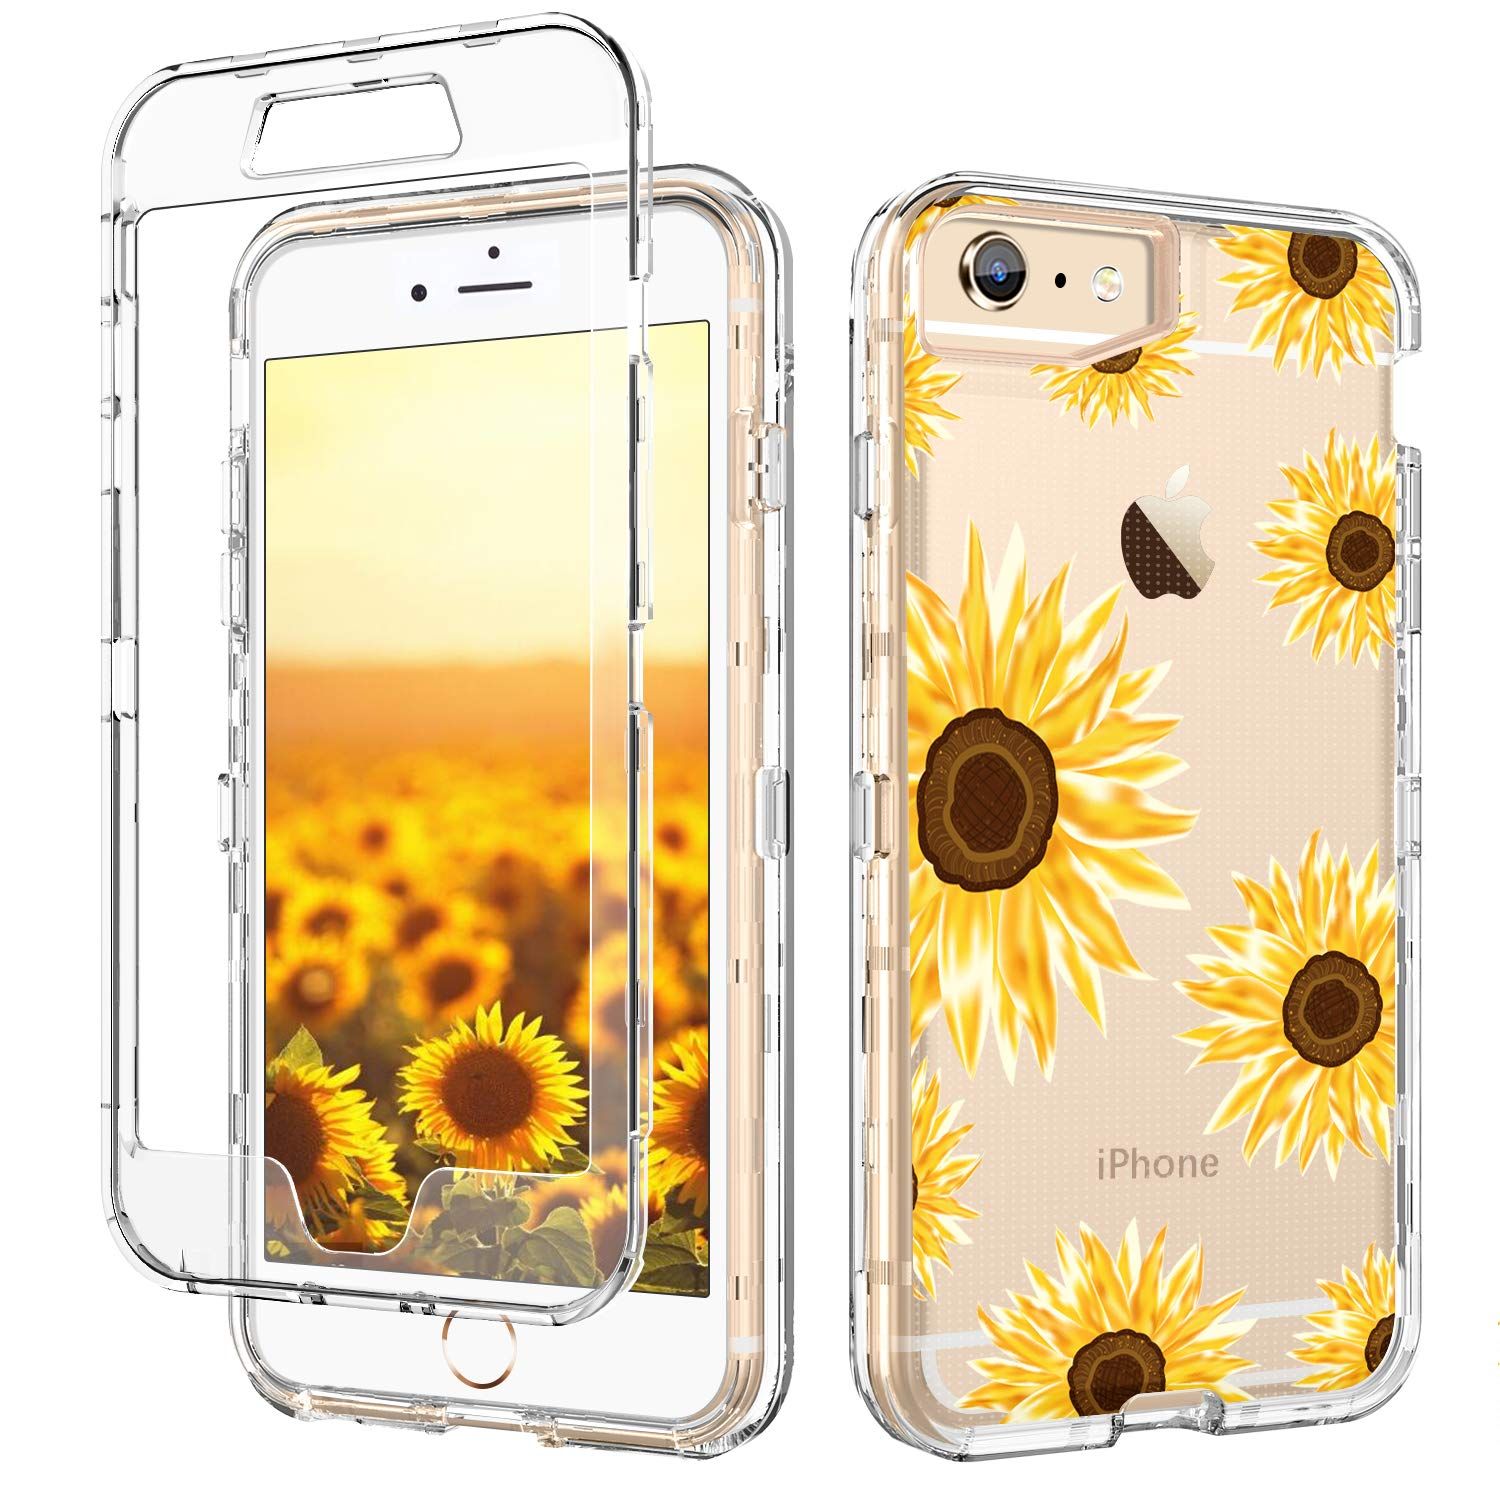 GUAGUA iPhone 6S Plus Case iPhone 6 Plus Case Clear Transparent Cover Sunflower Floral Printed Three Layer Hybrid Hard PC Soft Rubber Shockproof Protective Phone for iPhone 6 Plus/6S Plus Yollow